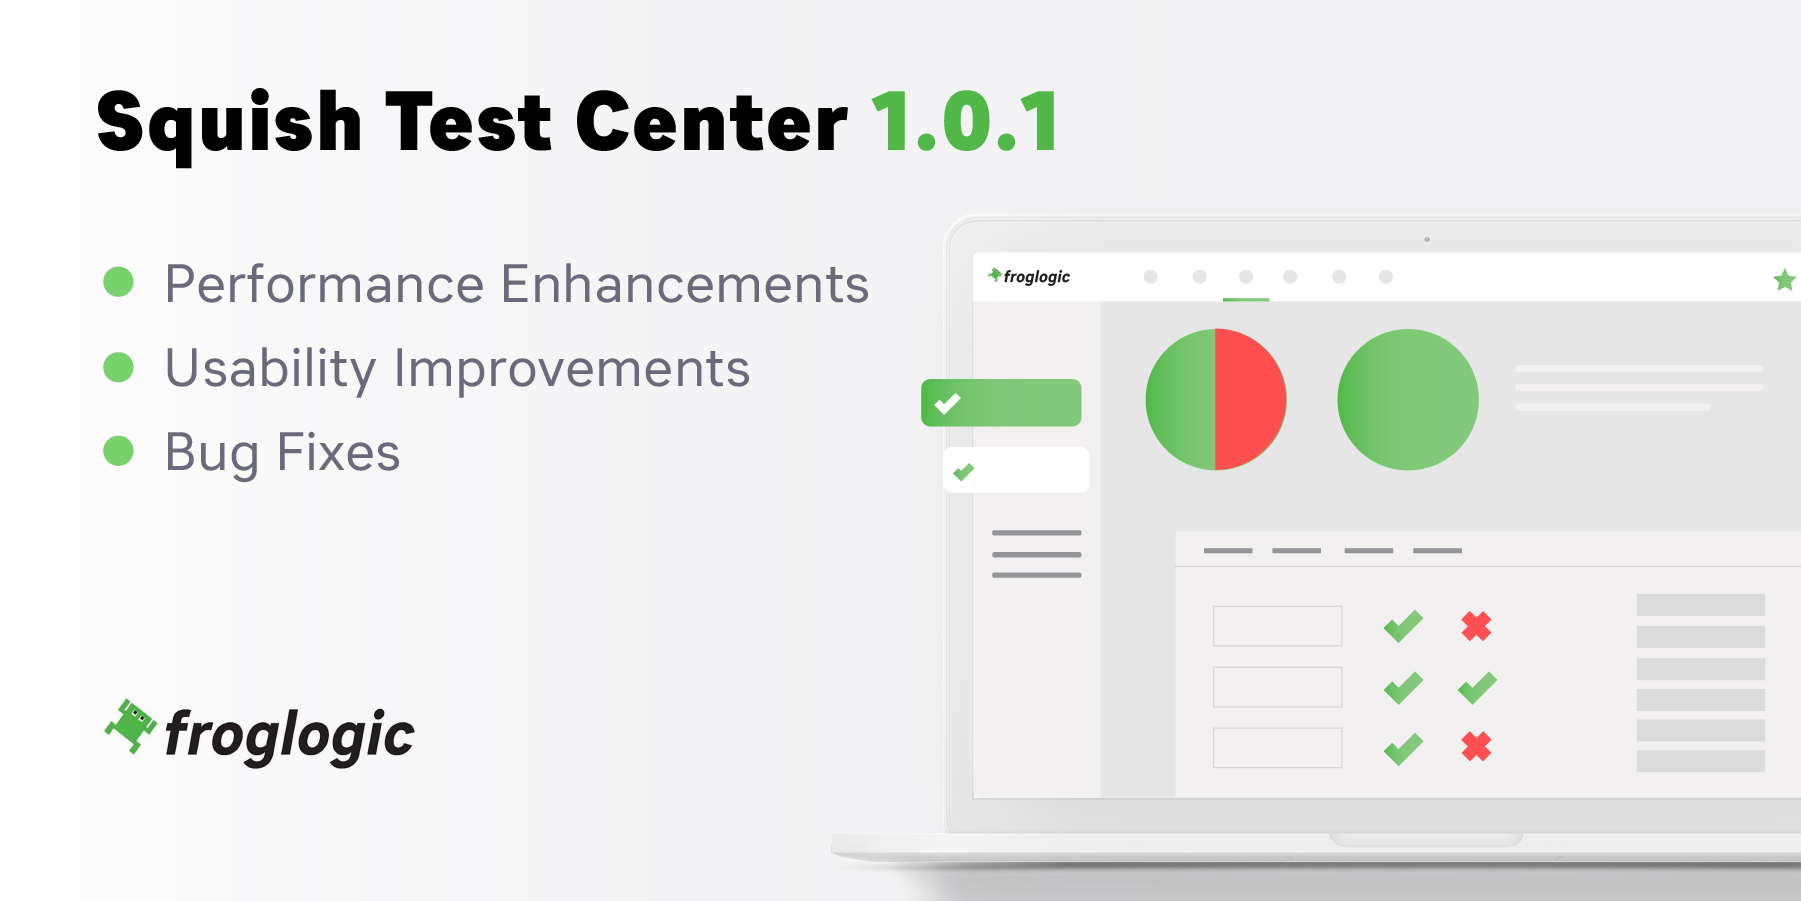 Squish Test Center 1.0.1 Release Graphic